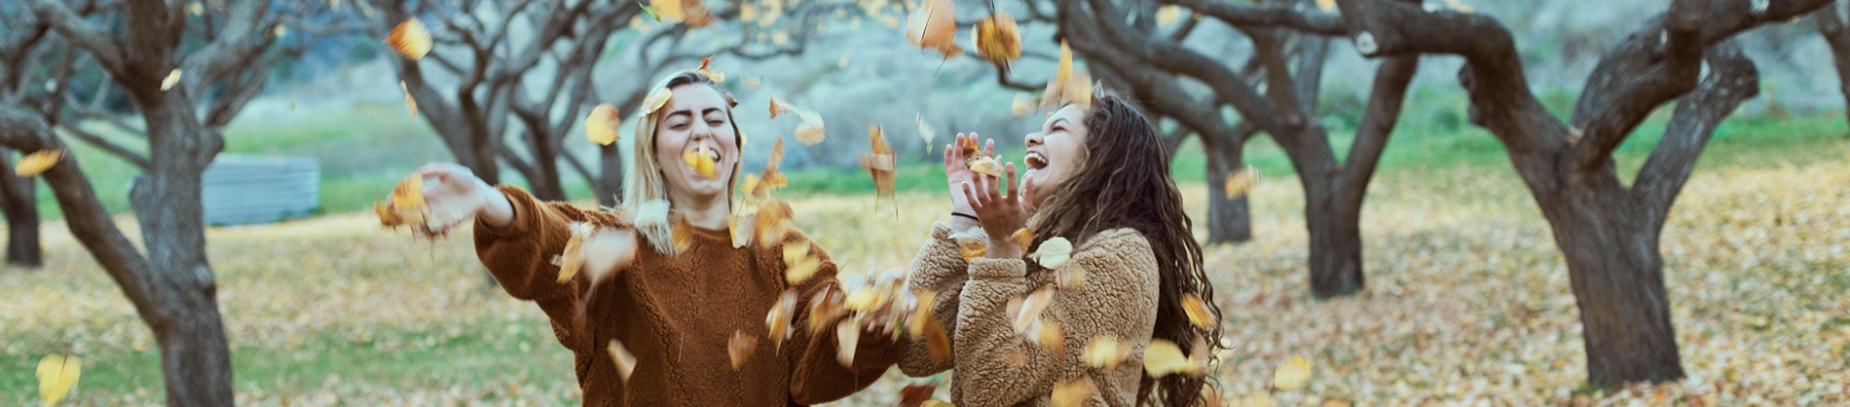 Two women in a park, throwing leaves into the air and laughing